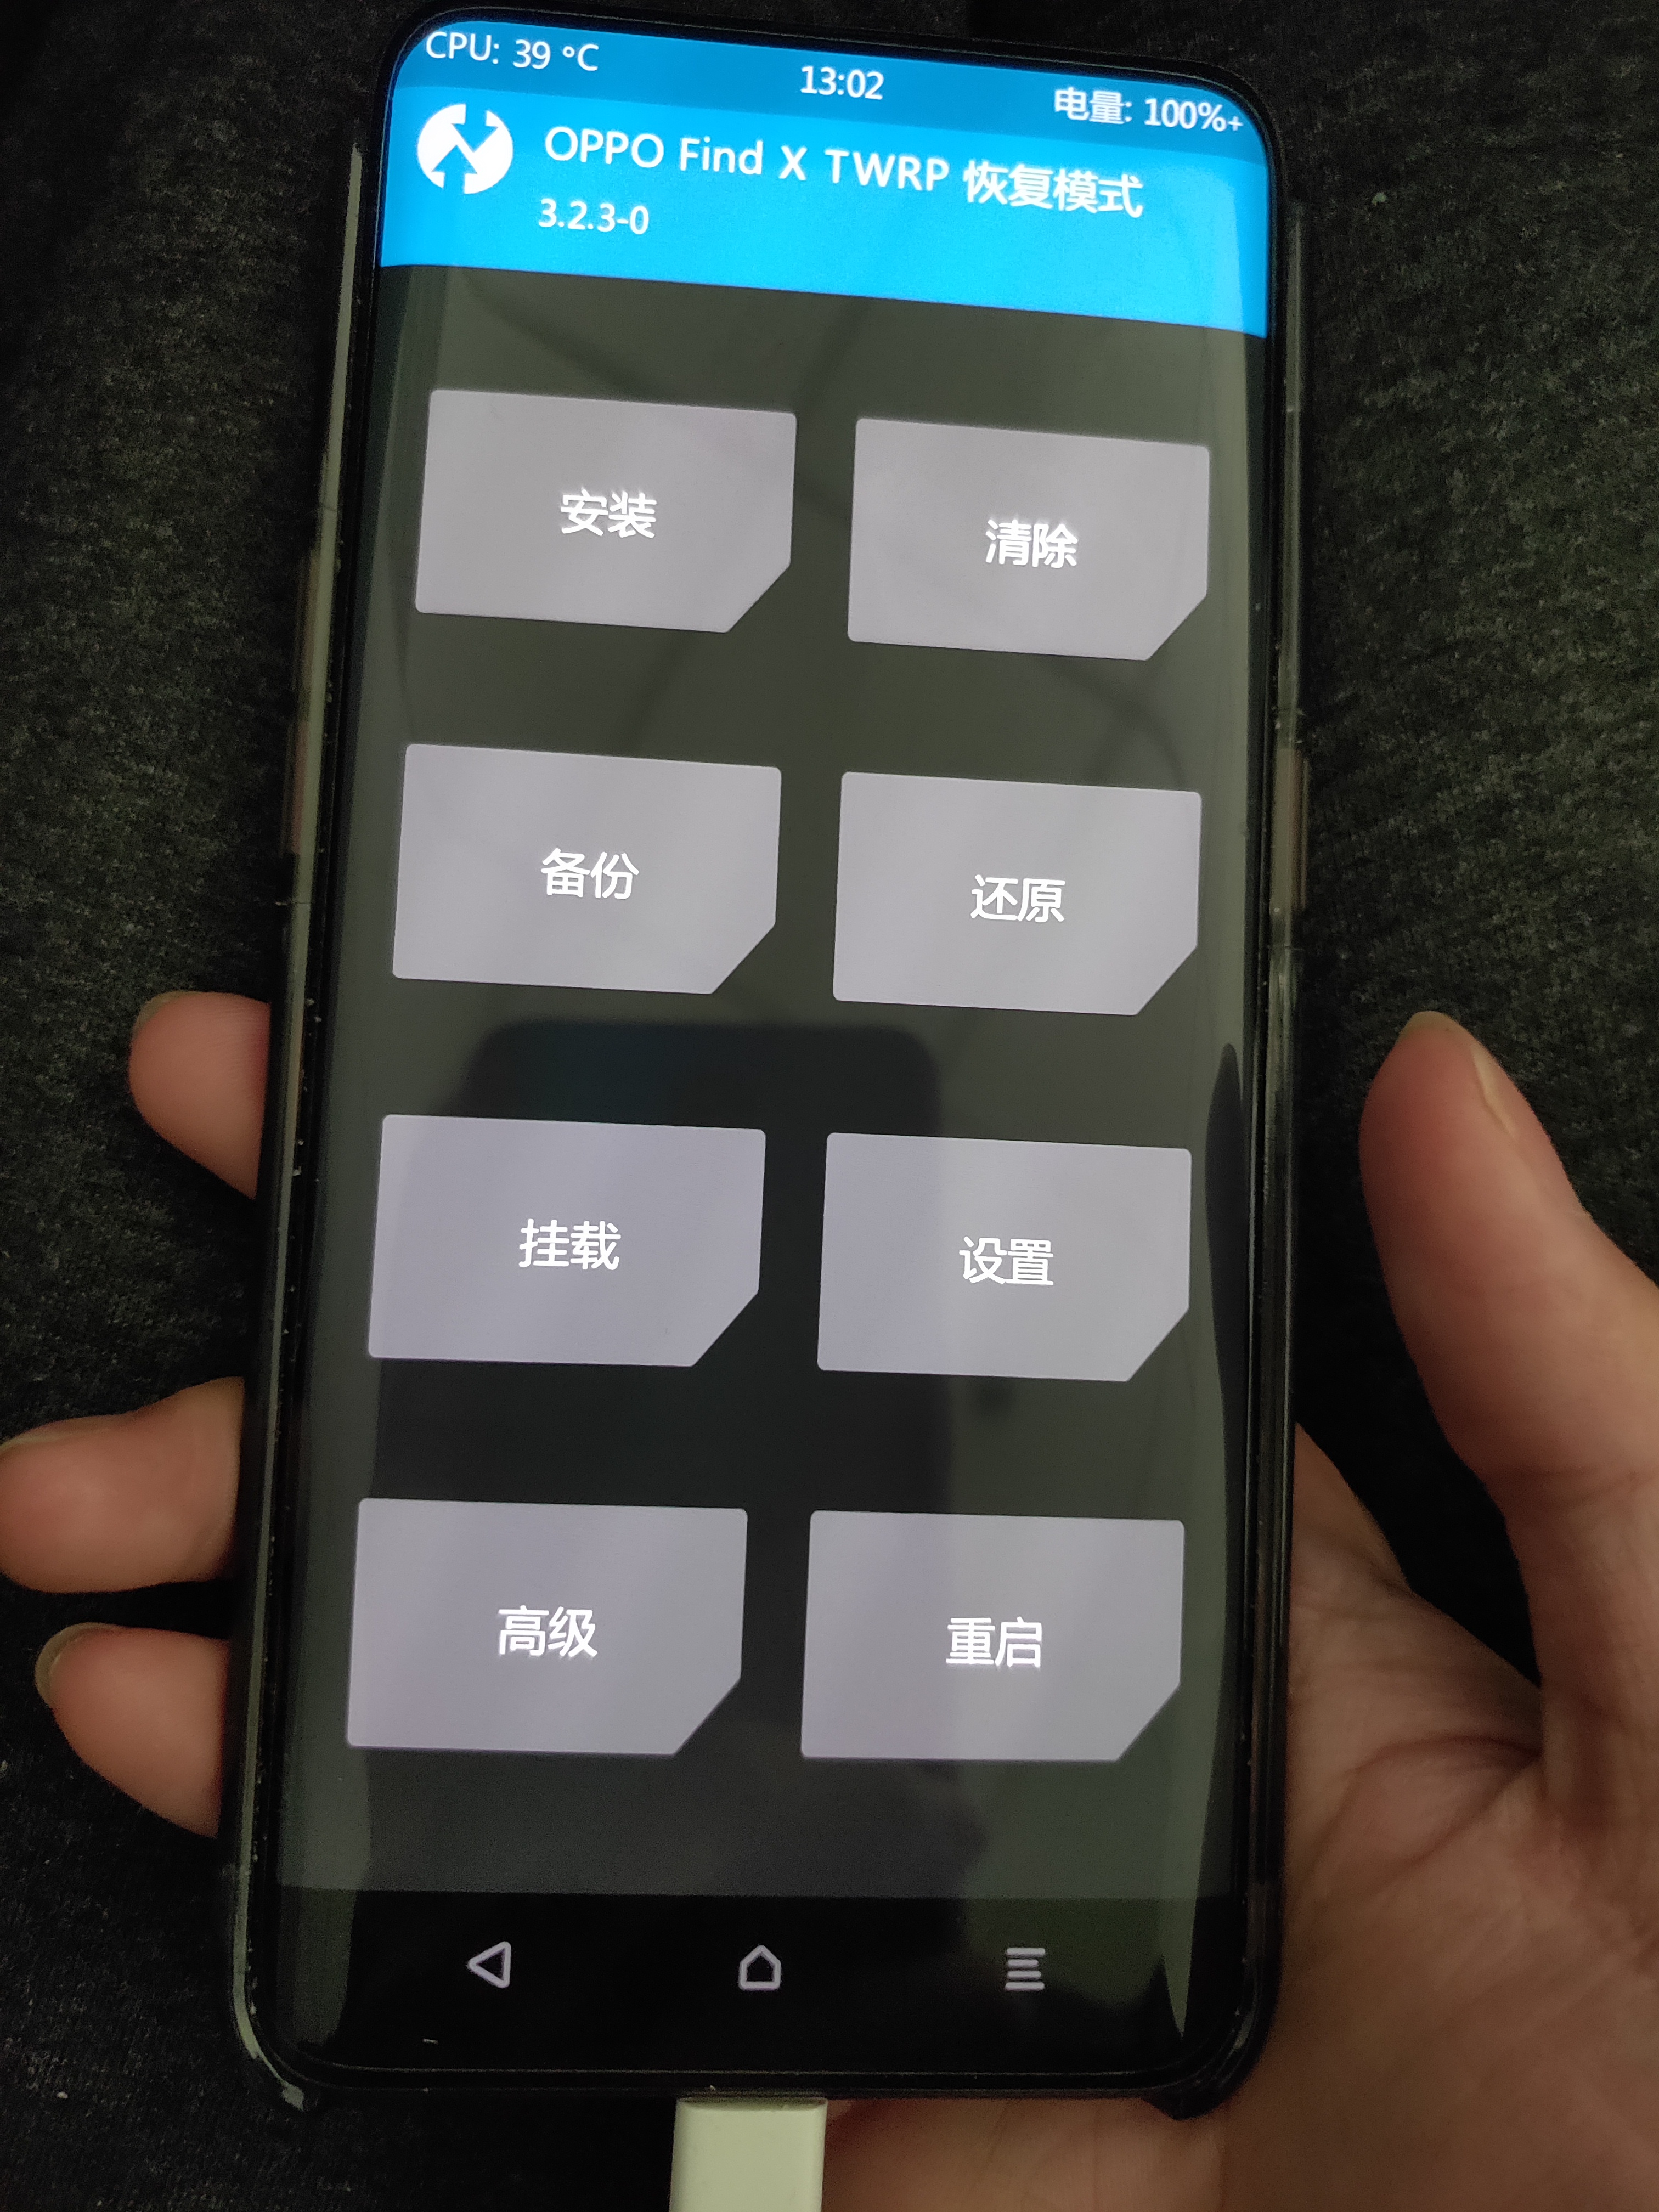 OPPO Find X 手机解锁BootLoader刷第三方Recovery以及获取ROOT教程